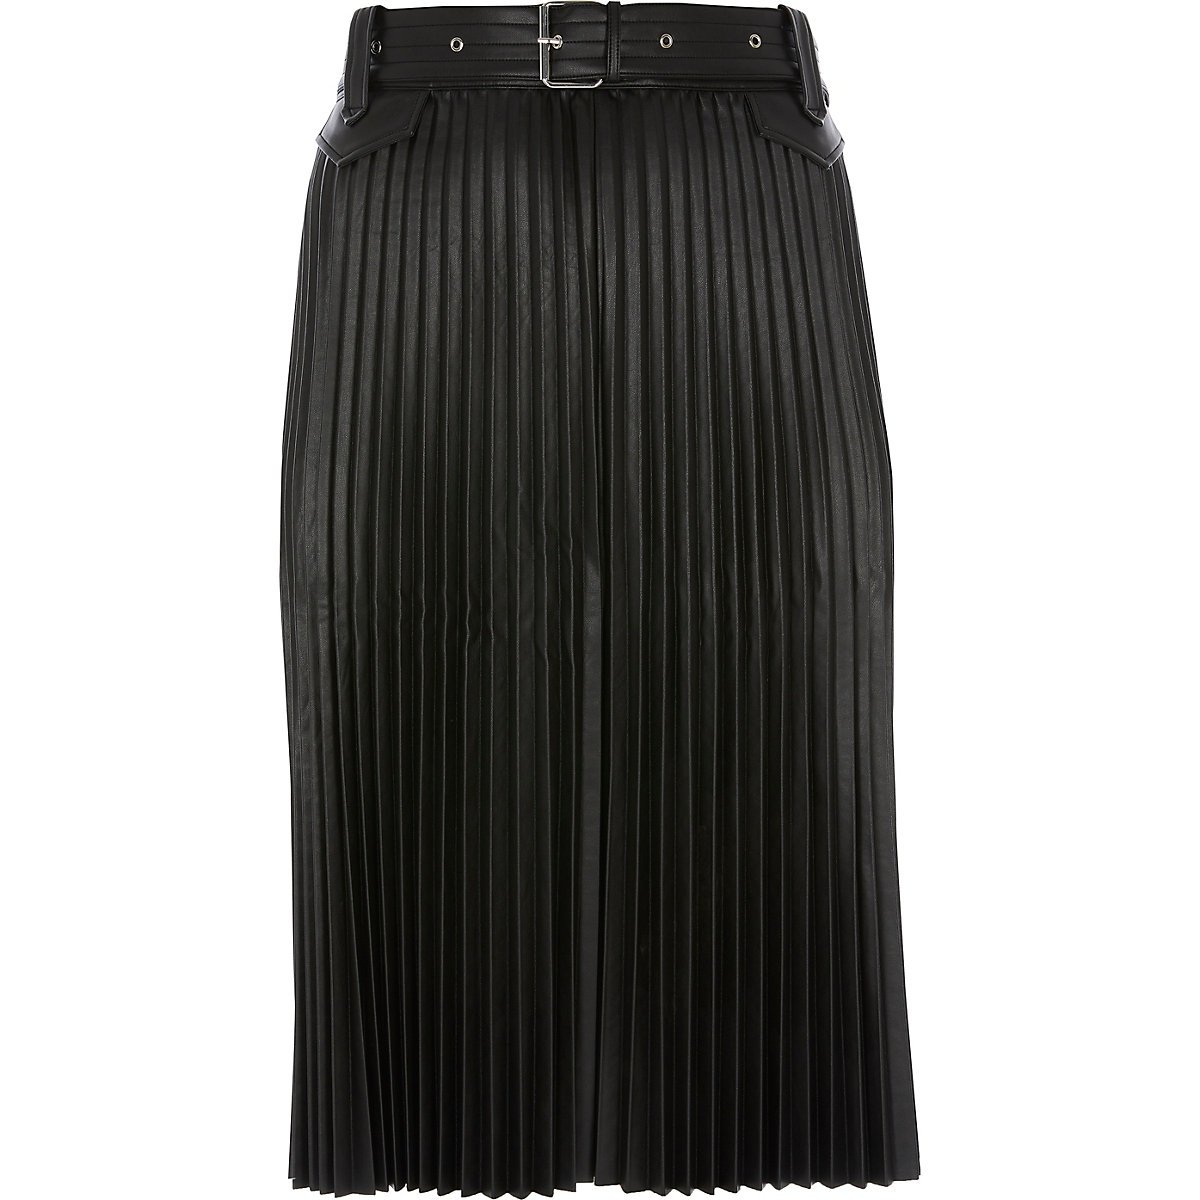 Plus black faux leather pleated midi skirt - Midi Skirts - Skirts - women